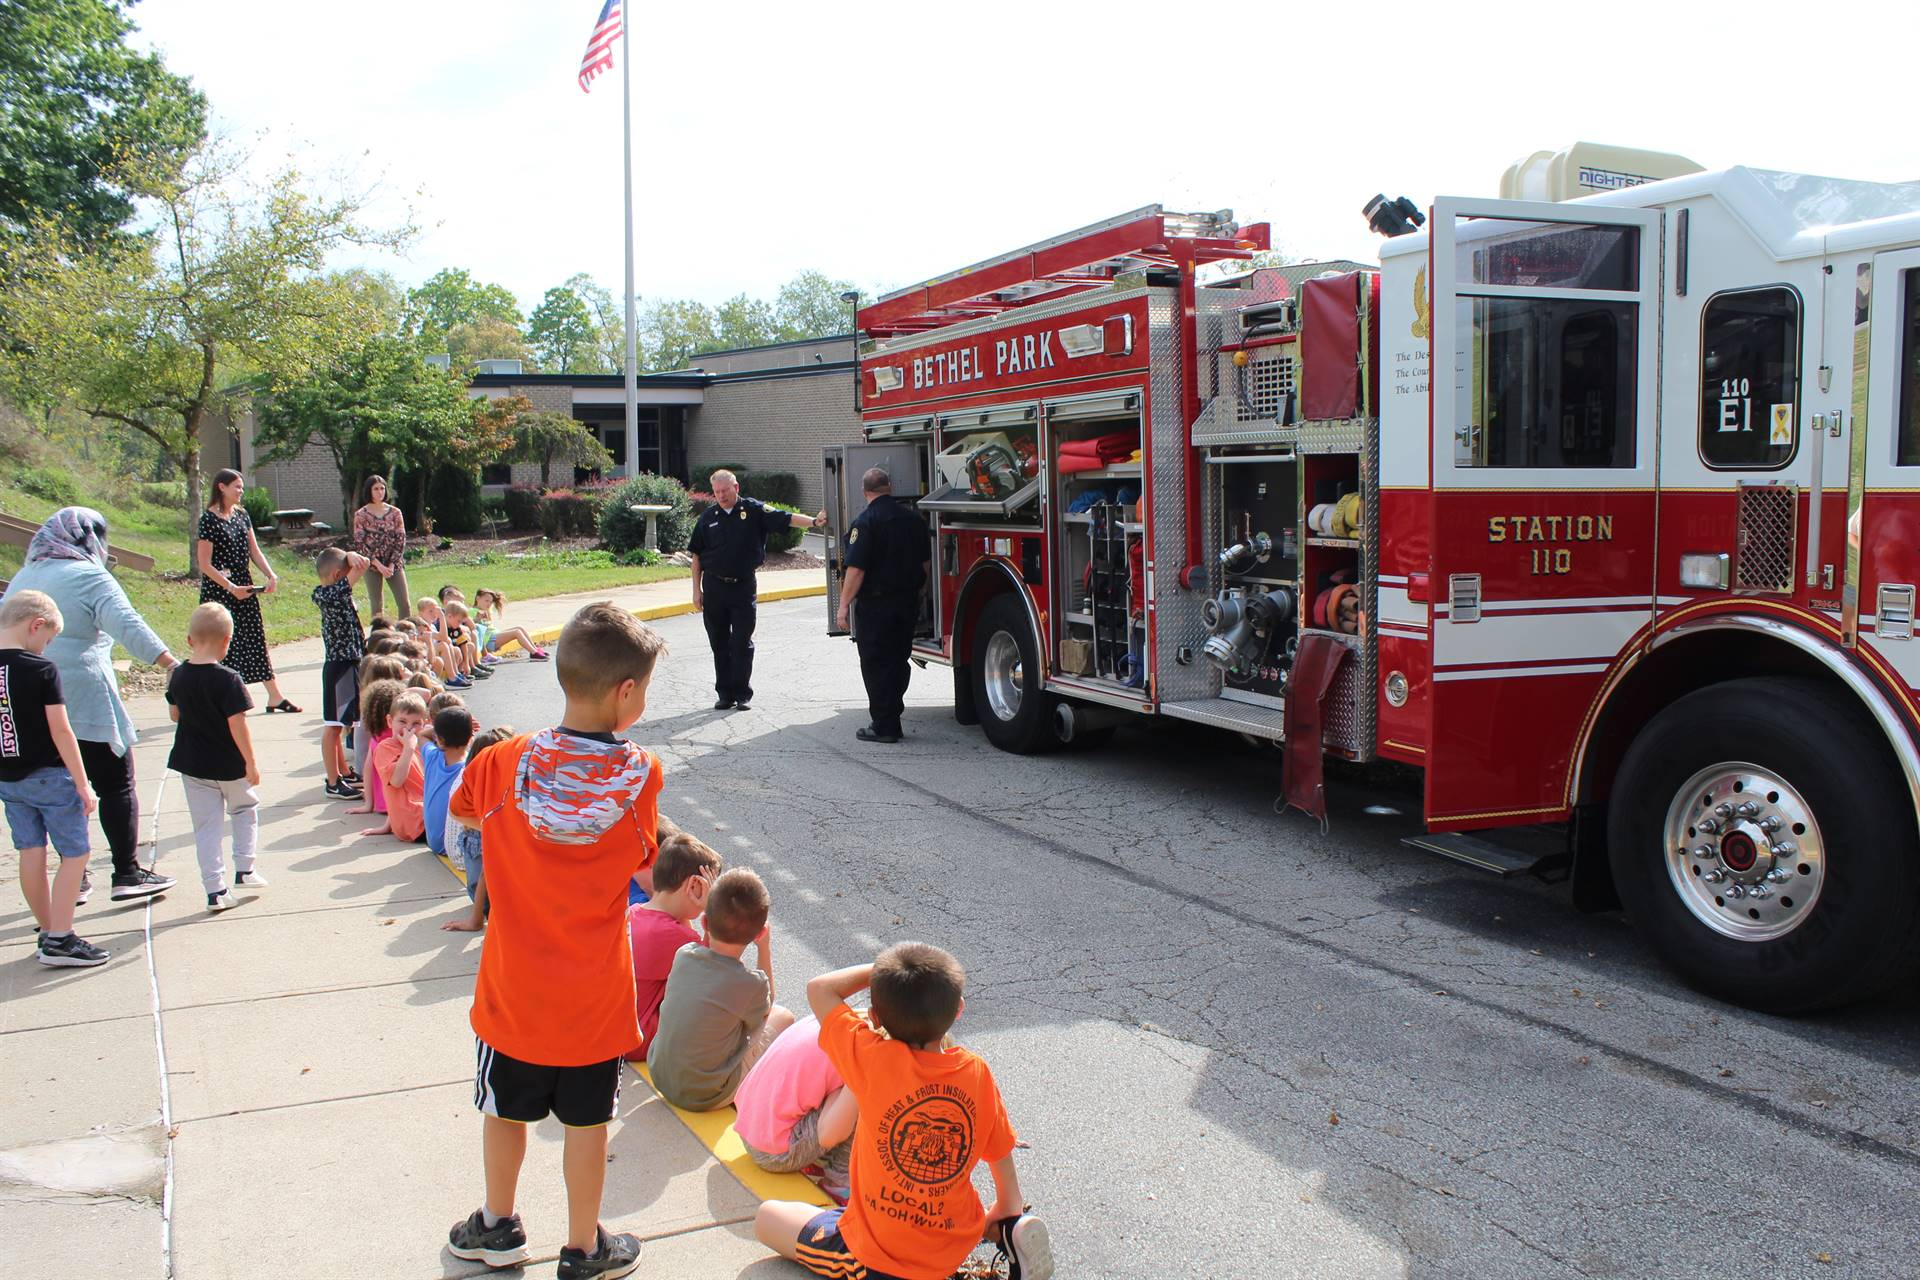 Students watching the firemen in front of the fire truck